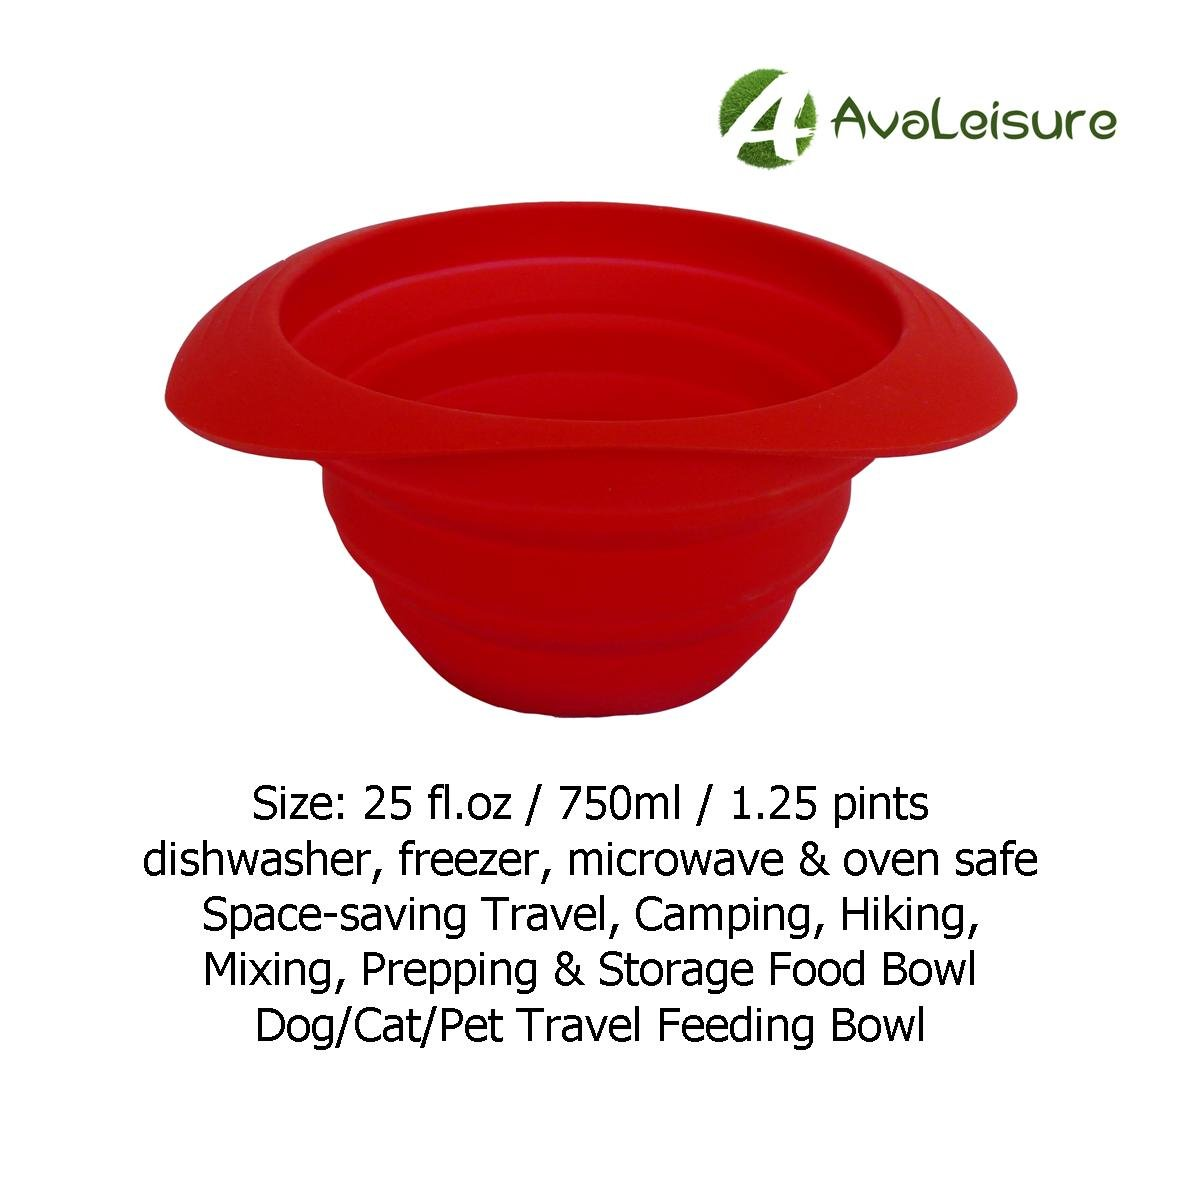 AVALEISURE COLLAPSIBLE SILICONE TRAVEL CUP- the Genuine 10oz Foldable Drinking Mug with Lid, BPA Free, Water, Coffee, Tea & Snacks for Hiking, Camping, Picnic & Commuting to Work by AVALEISURE (Image #6)